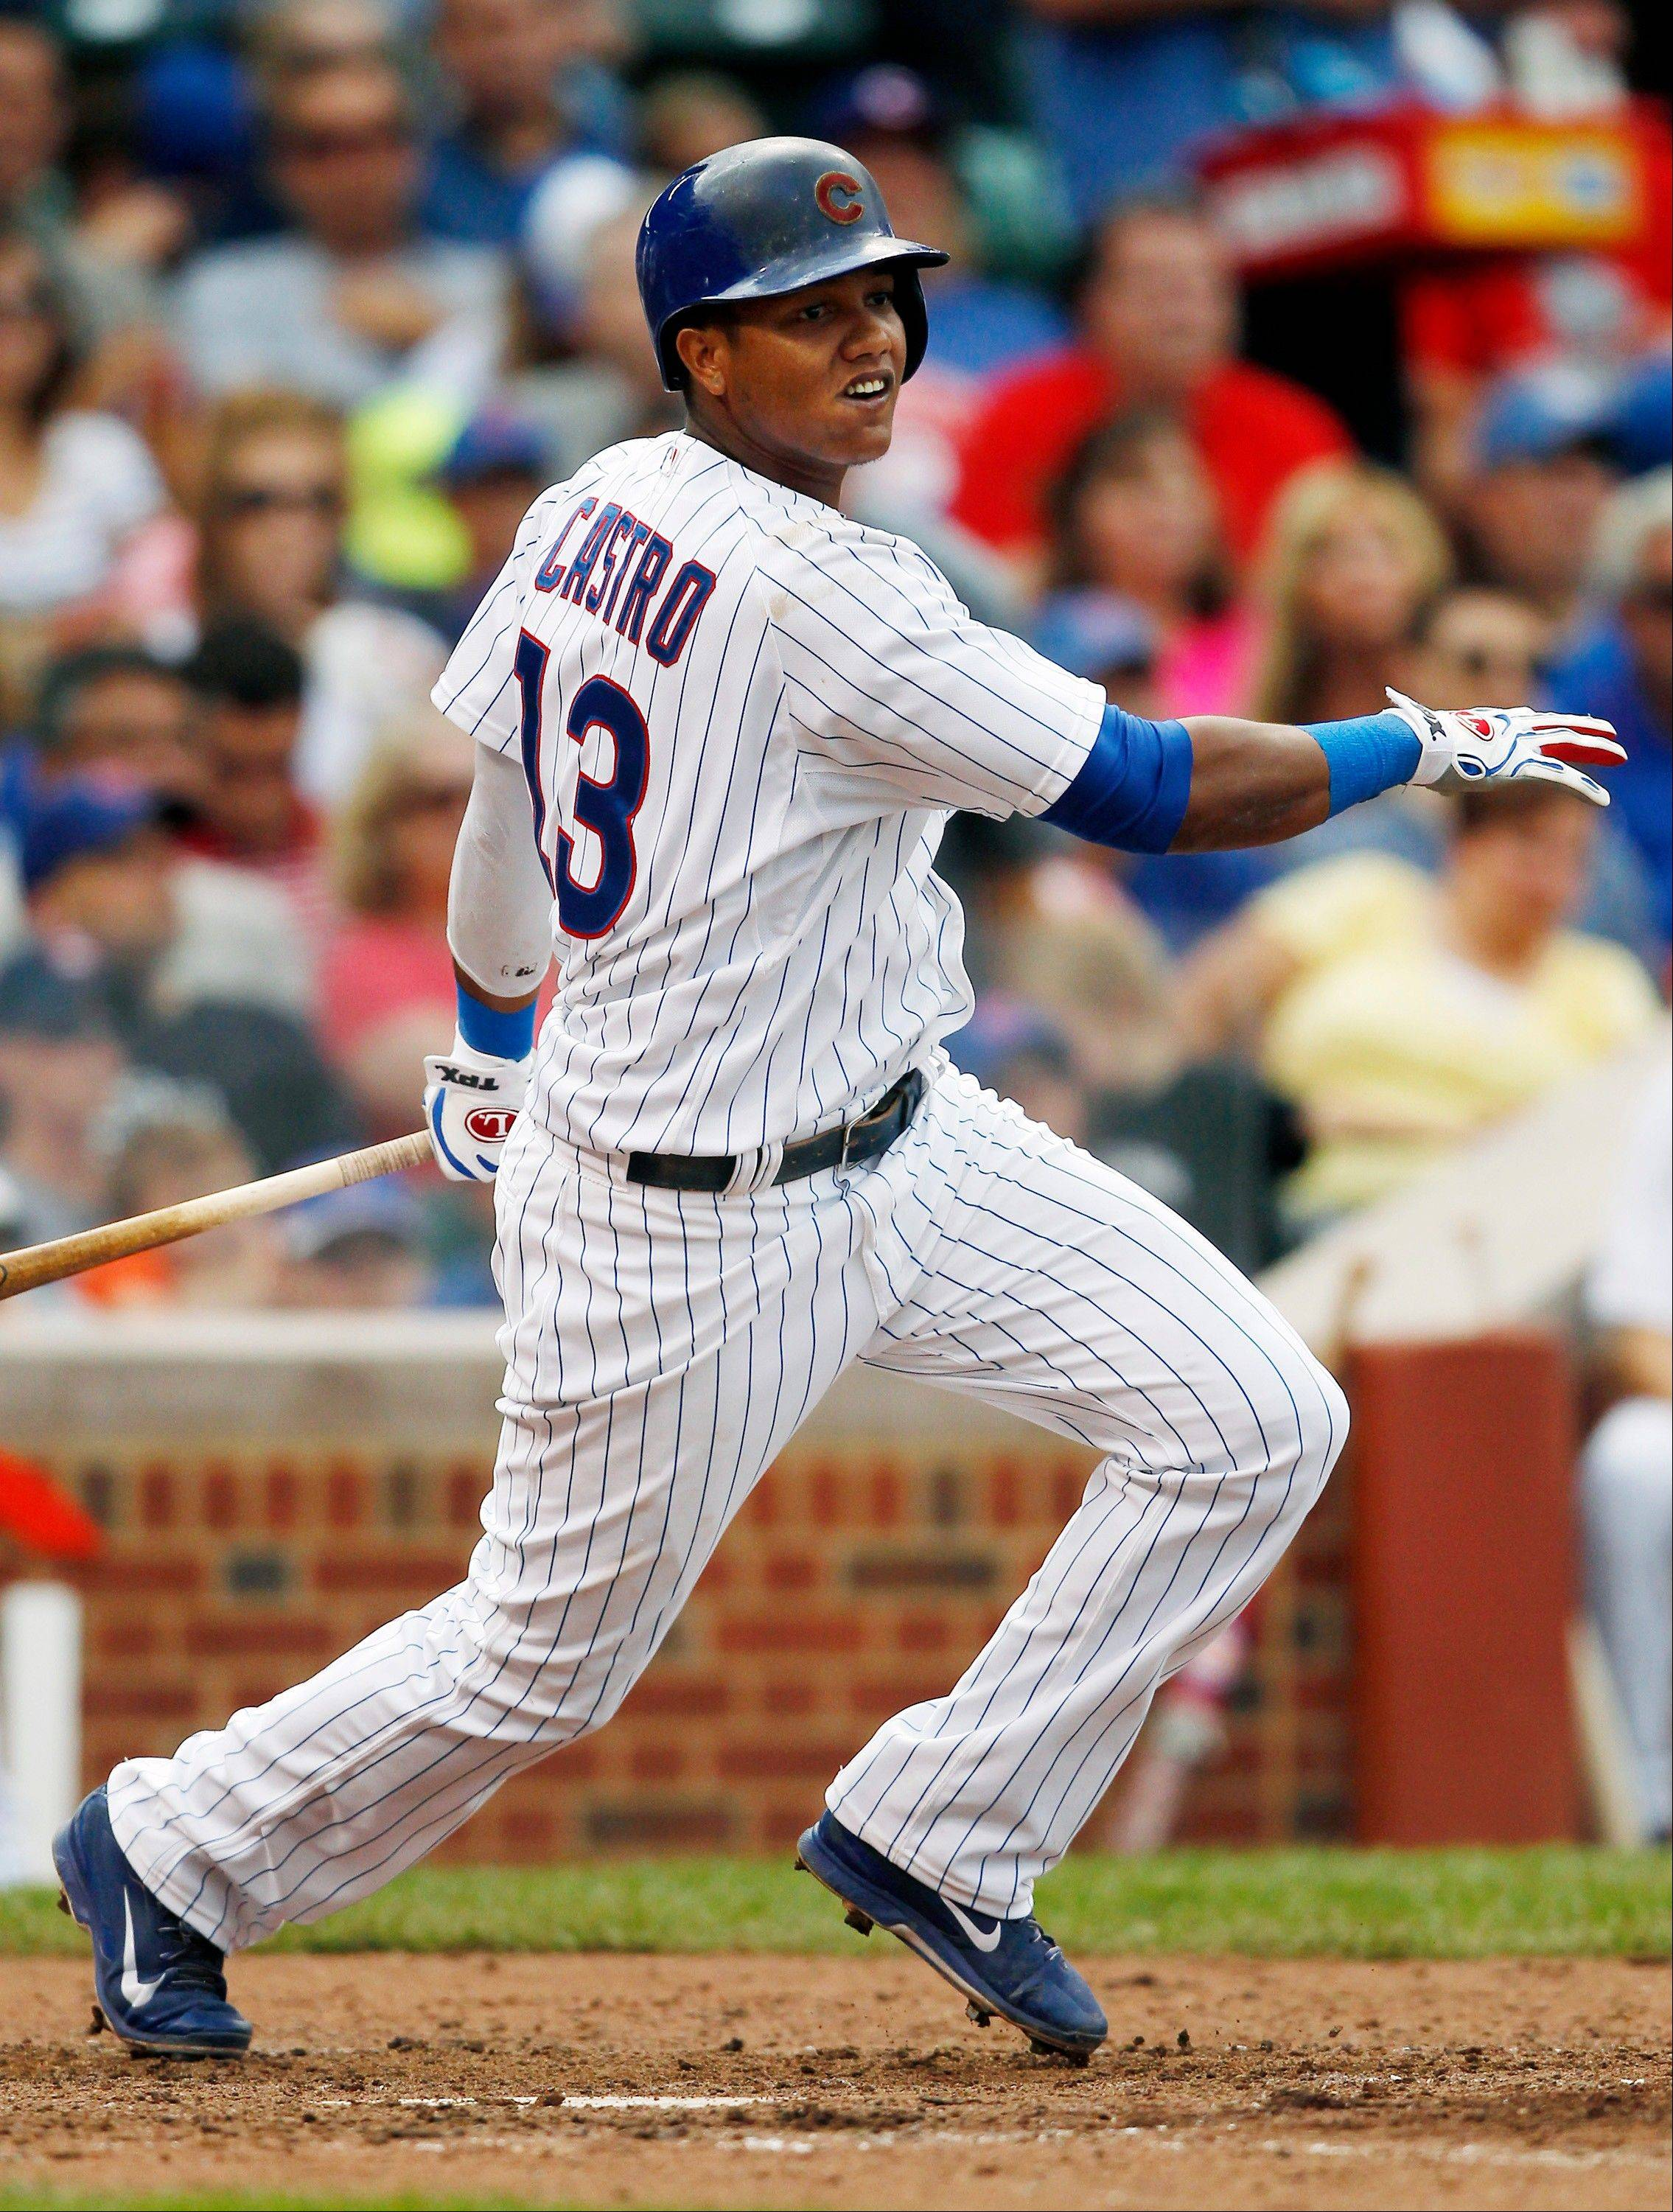 Chicago Cubs� Starlin Castro hits a double against the Philadelphia Phillies during the fourth inning of a baseball game on Saturday in Chicago.